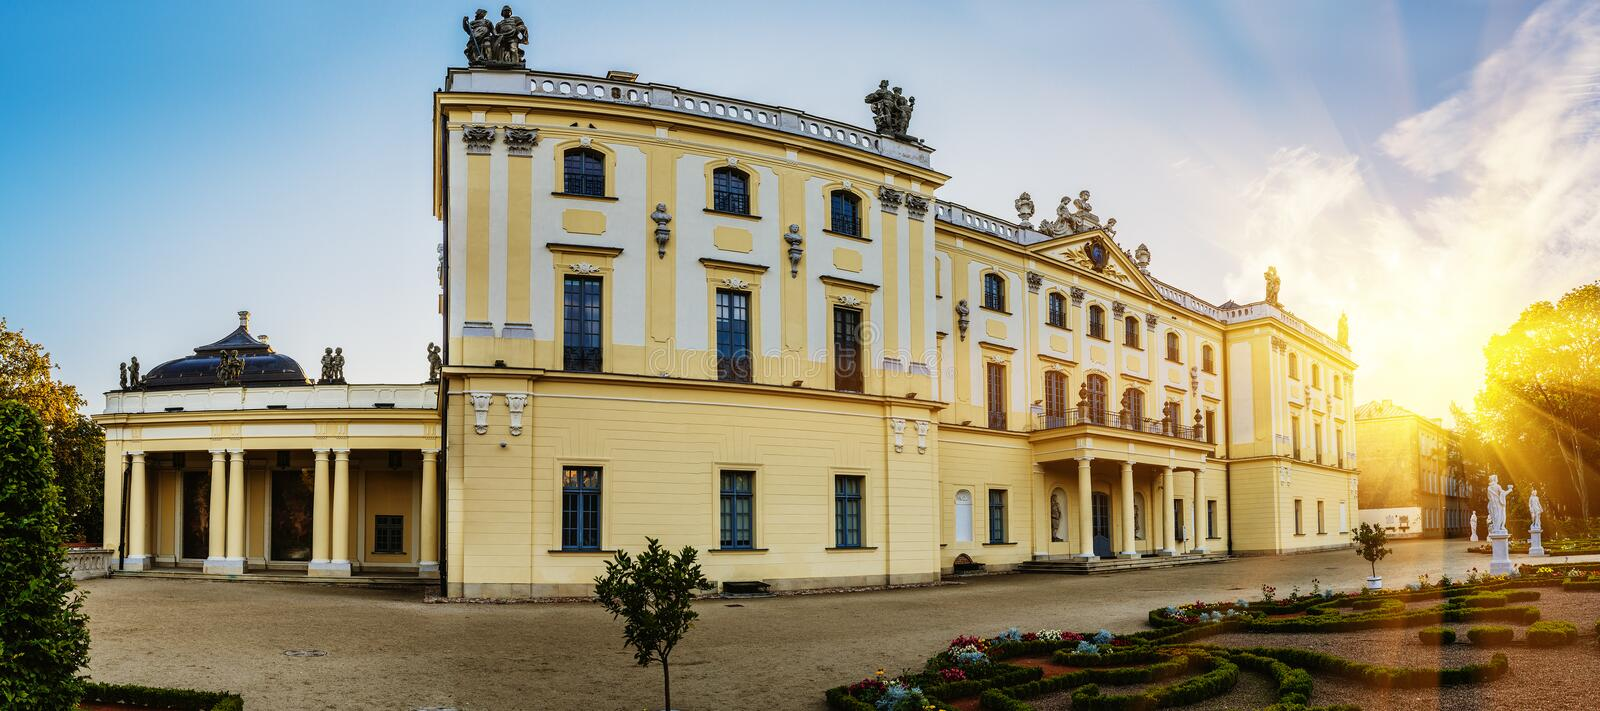 Branicki Palace in Bialystok stock photo